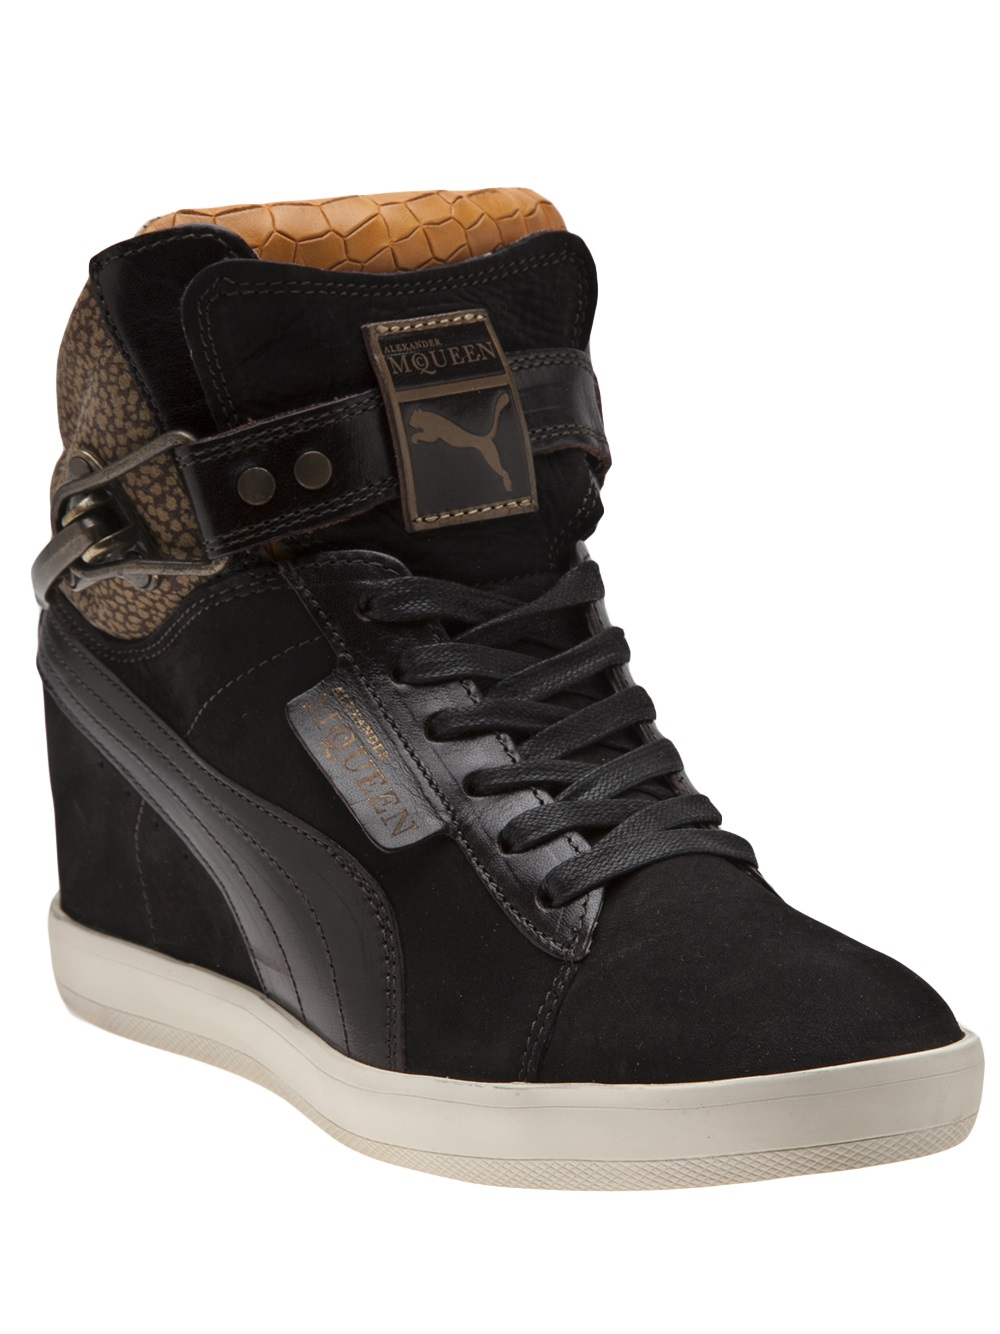 882a705f7e6 Lyst - Alexander McQueen X Puma Joustesse Mid Wedge Sneakers in Black